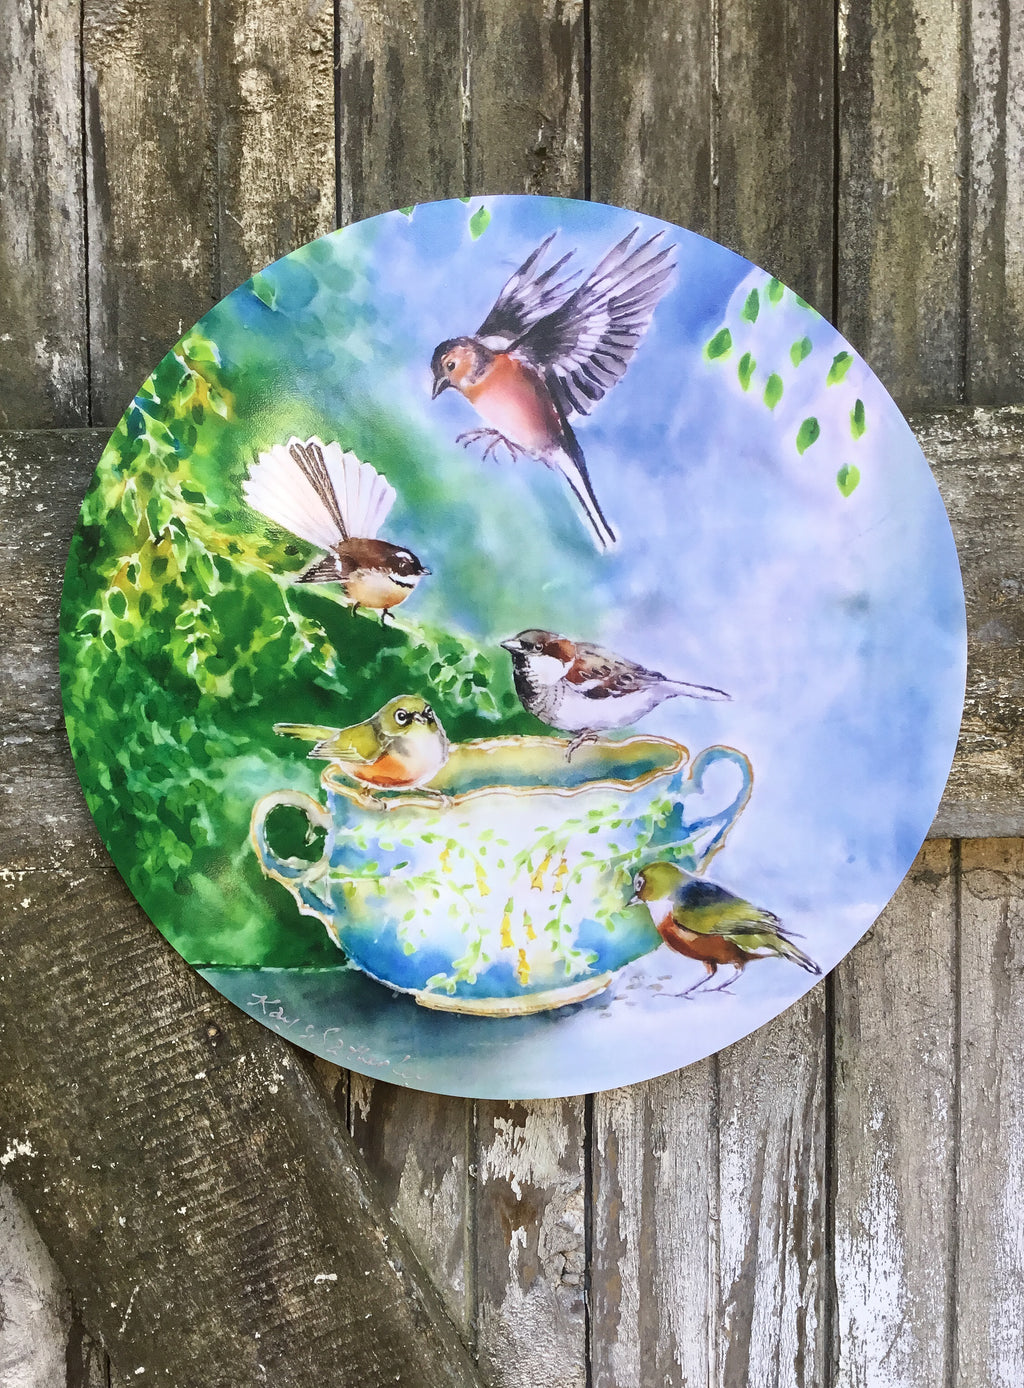 Small birds, SilverEyes, Chaffinch, Fantail and Sparrow on Vintage China - Circle Outdoor Art Panel